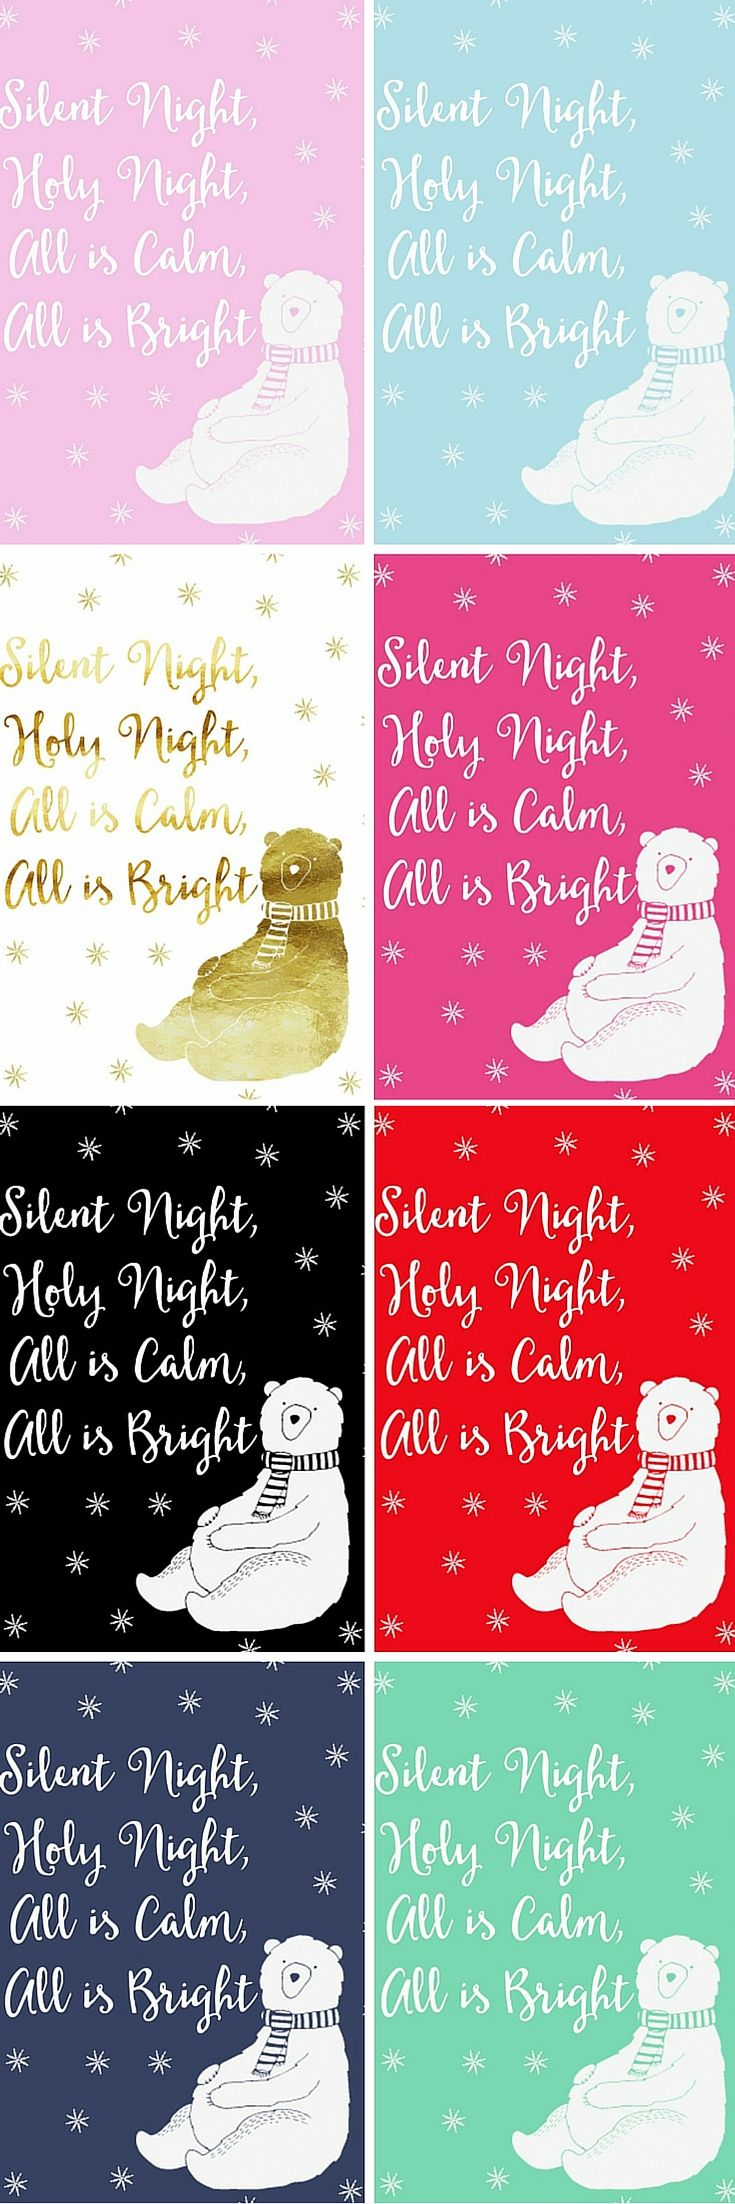 Free Silent Night Christmas Printables perfect for a nursery or as sweet gifts.